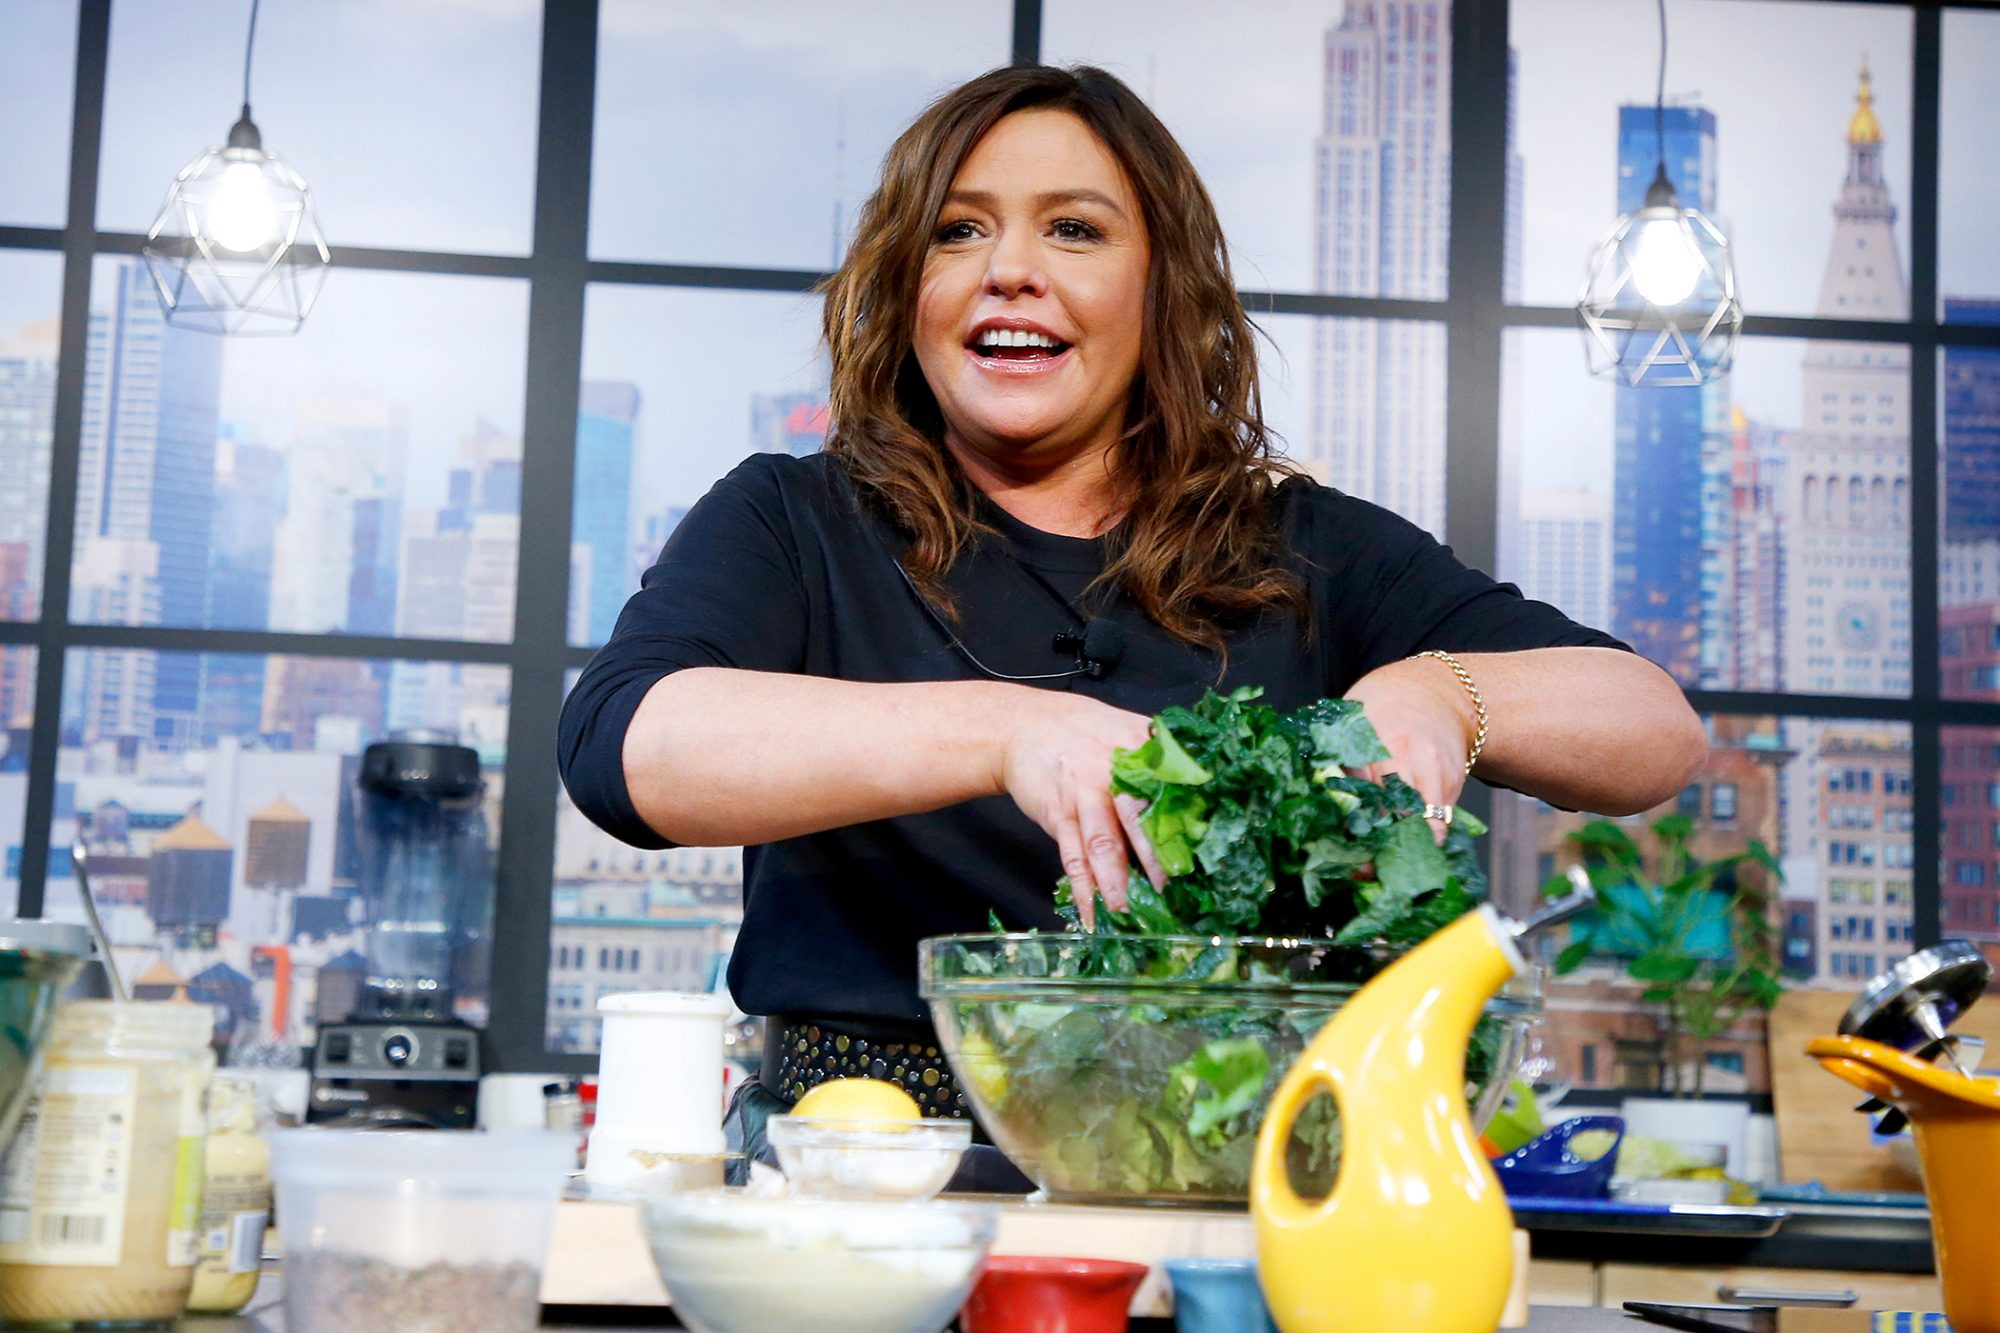 Rachael Ray tossing a salad on her set